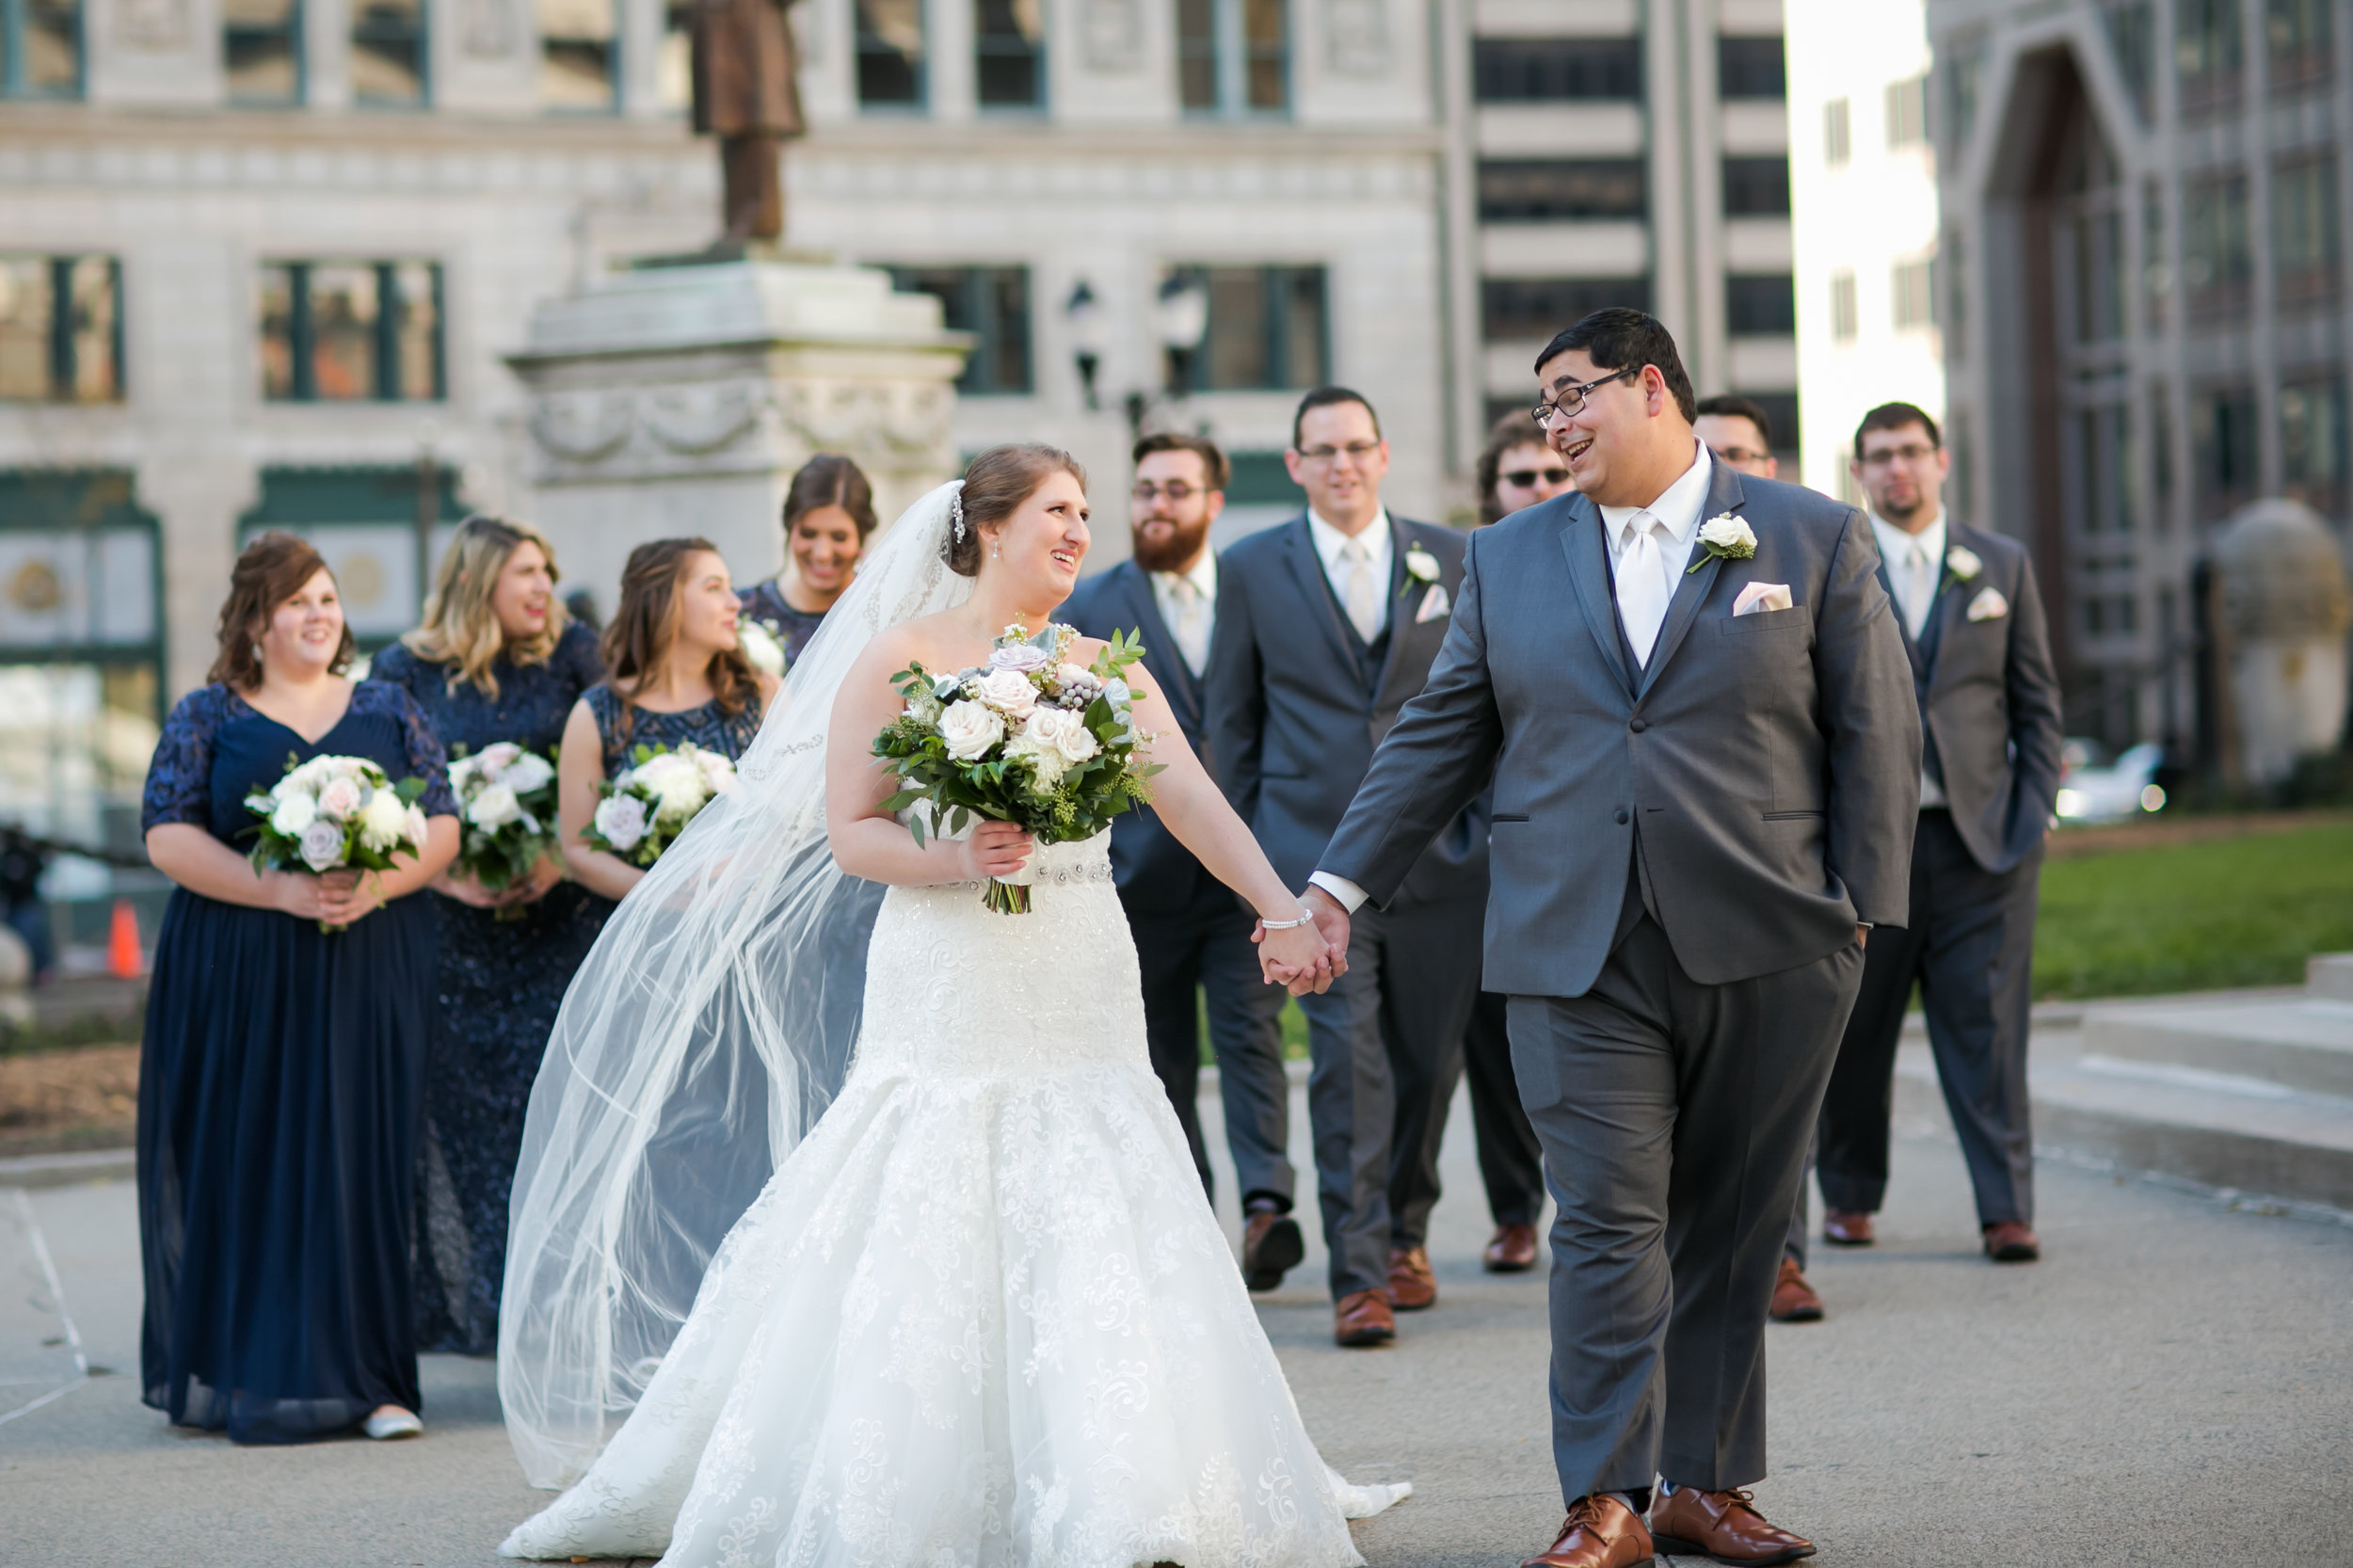 bride and groom walk downtown with bridal party